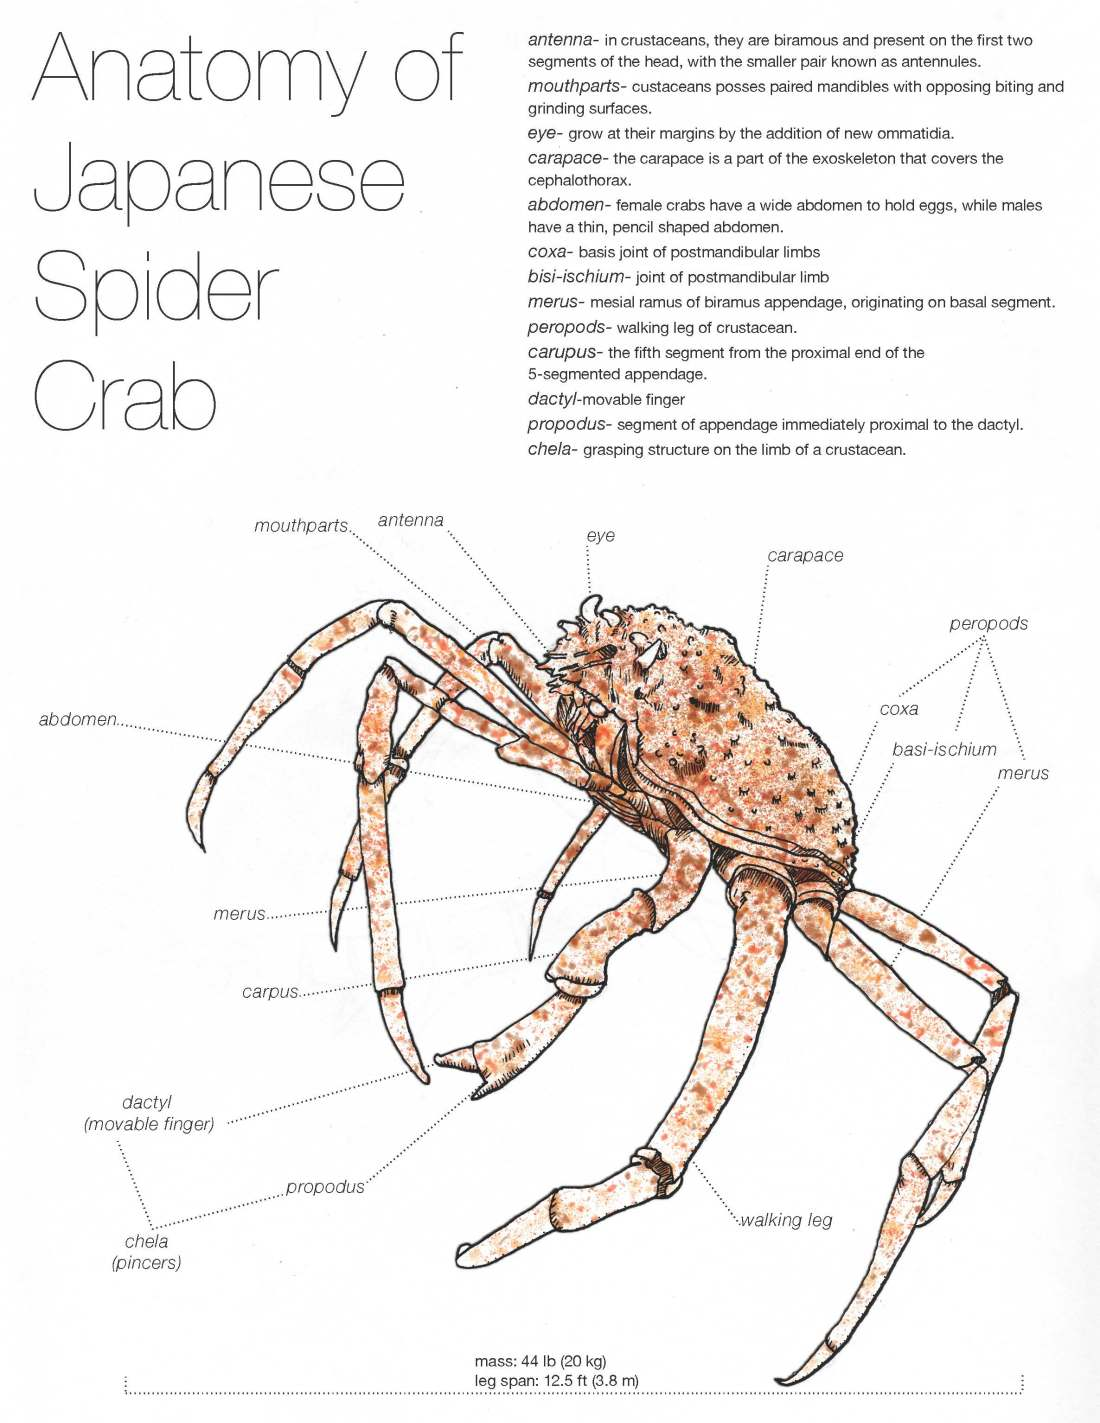 Anatomy of crab